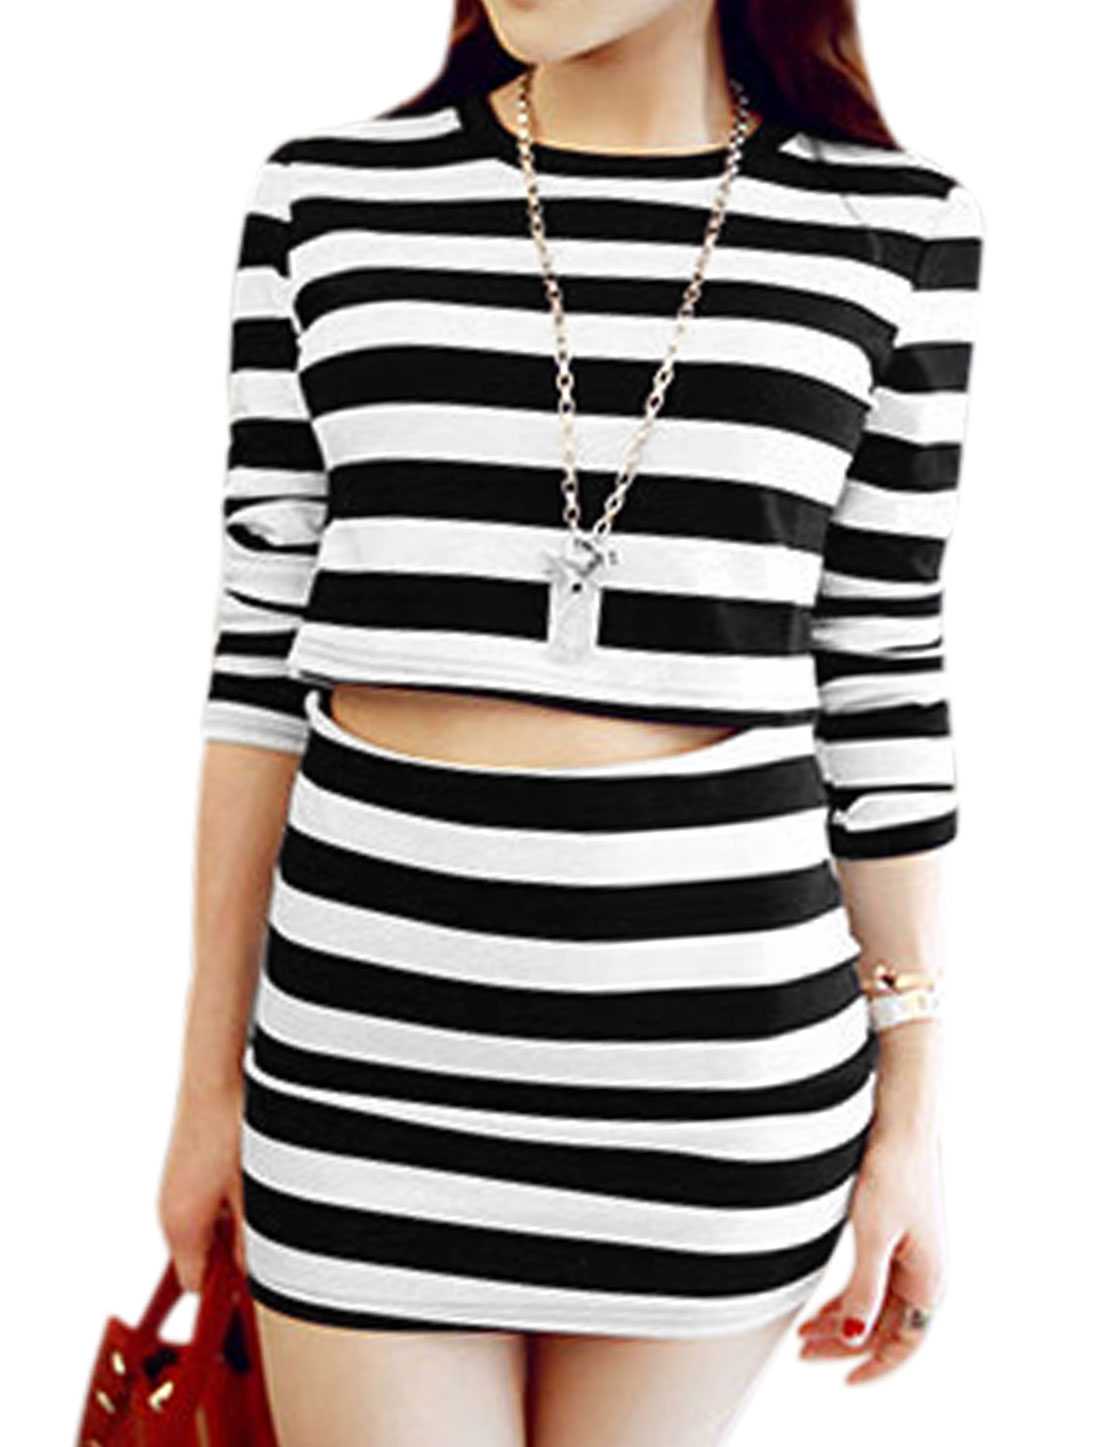 Ladies Black White Round Neck Stripes Cropped Top w Elastic Waist Over Hip Skirt XS